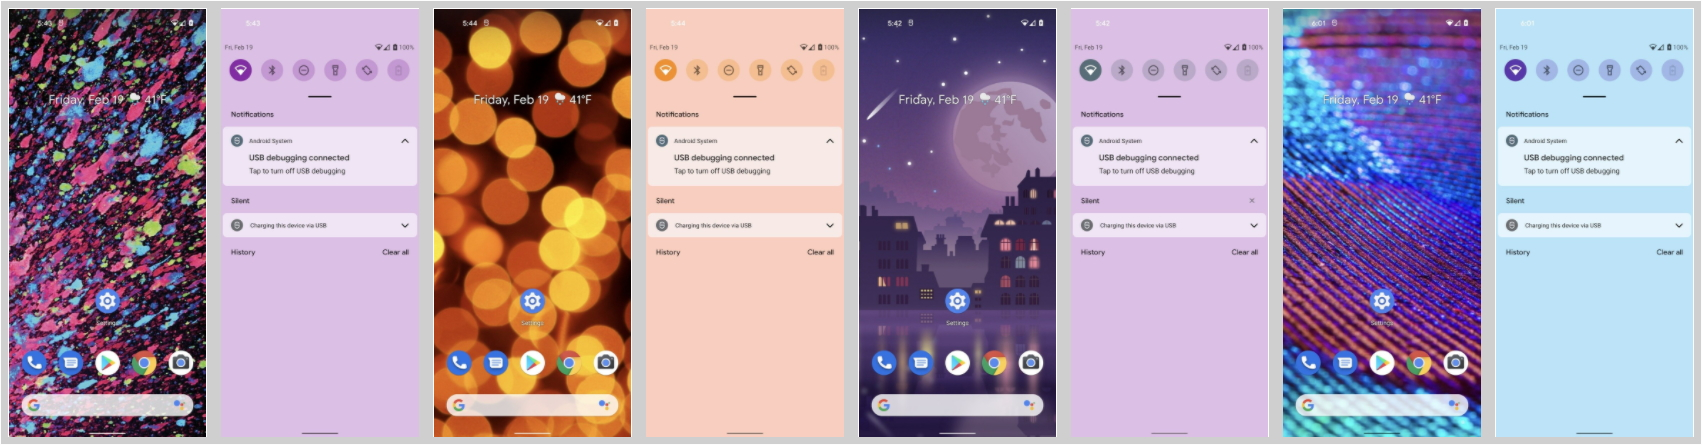 Android-12-Theming-System-1